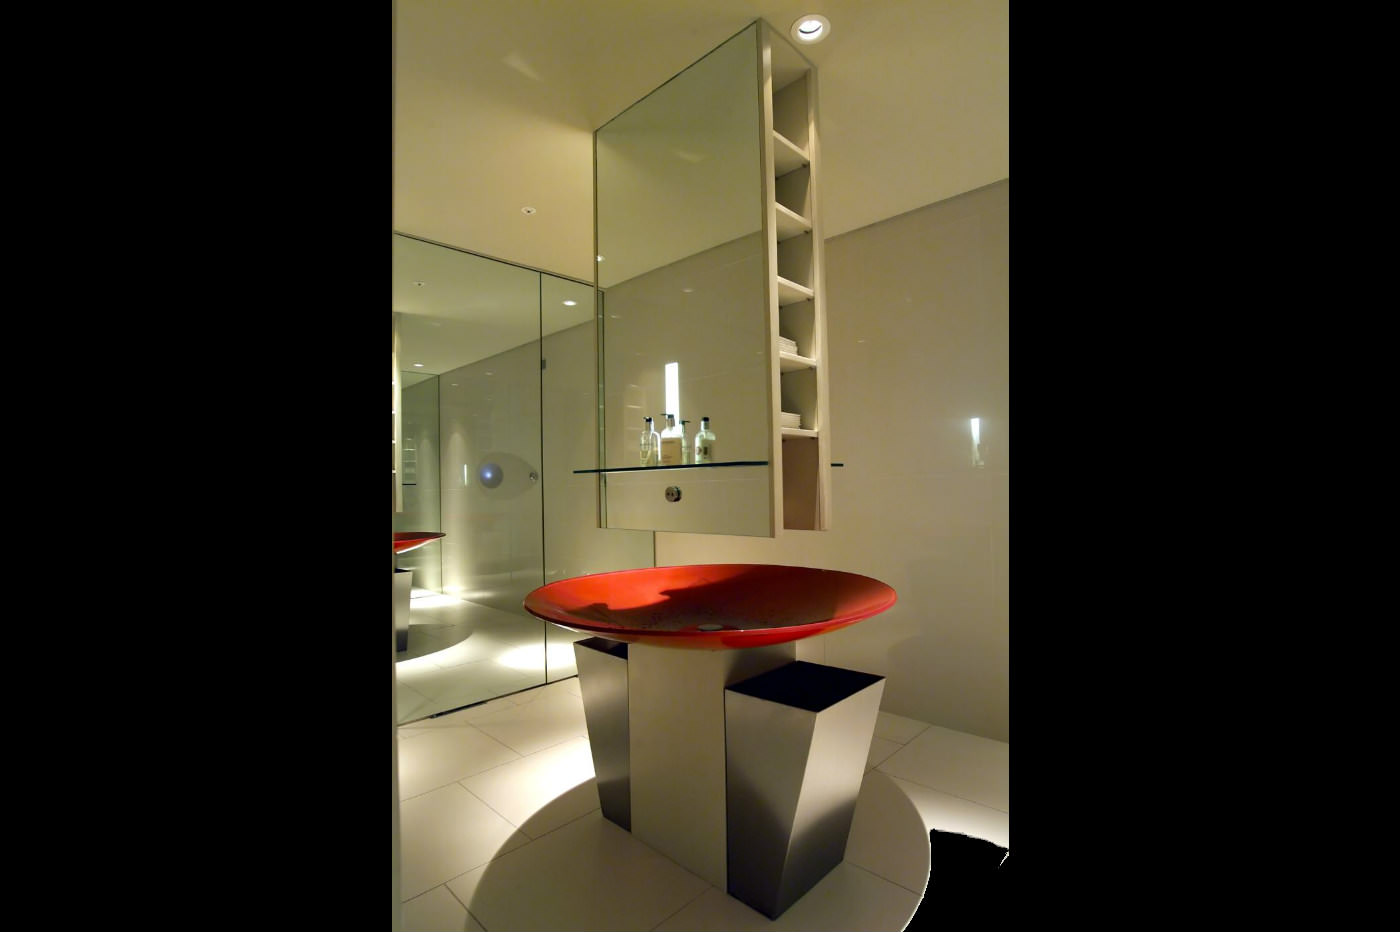 The Volt table